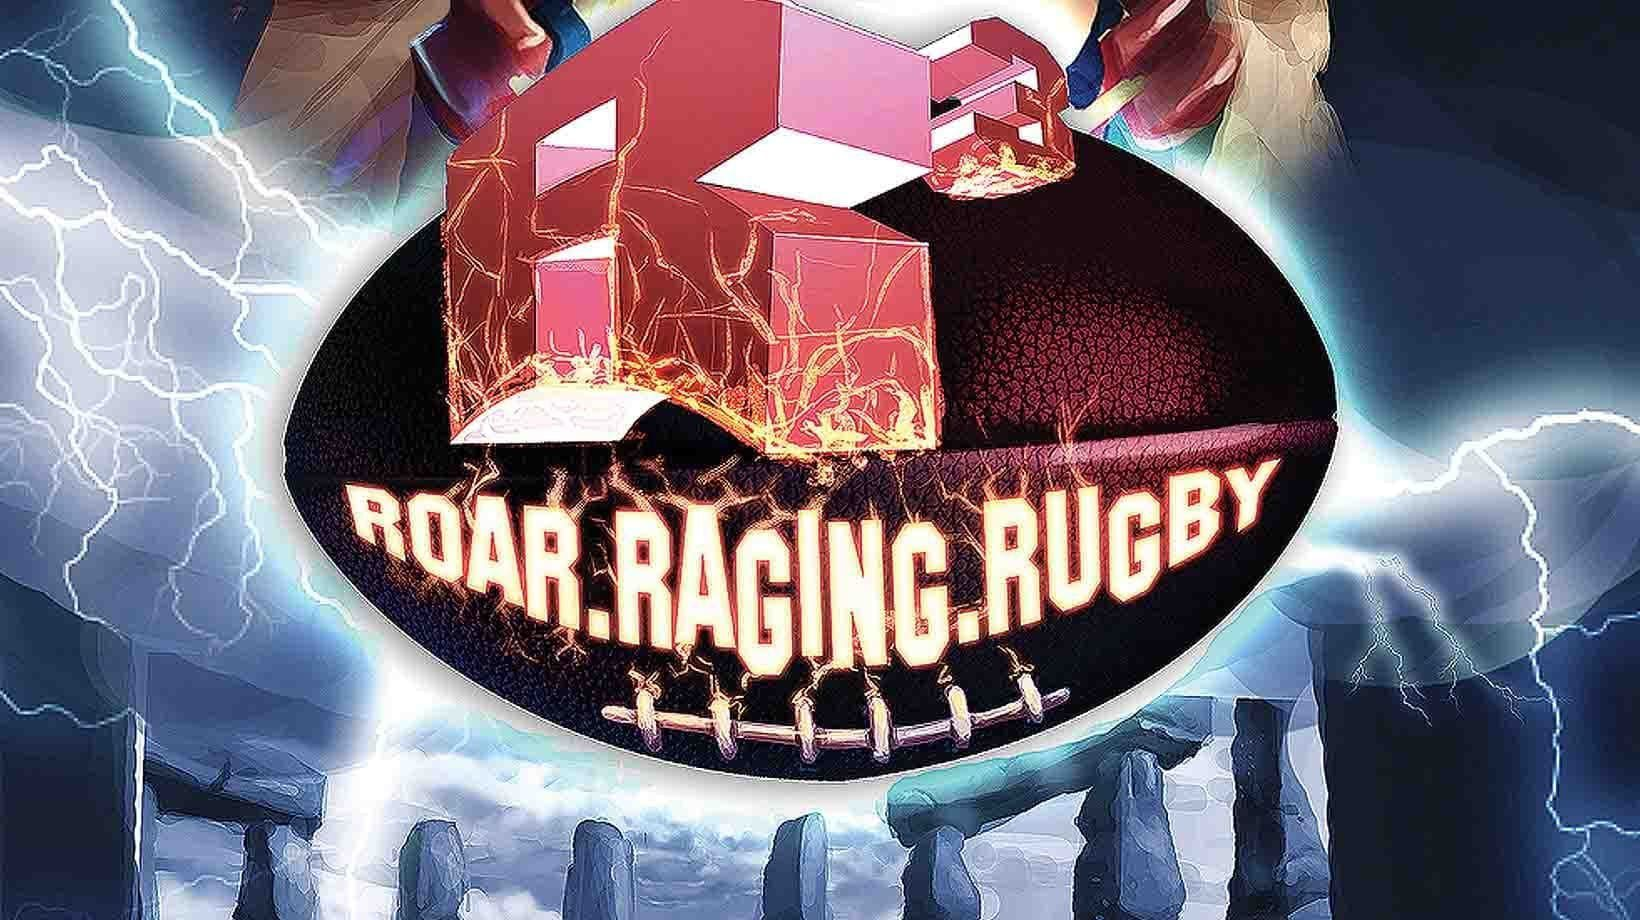 r3-roar-raging-rugby